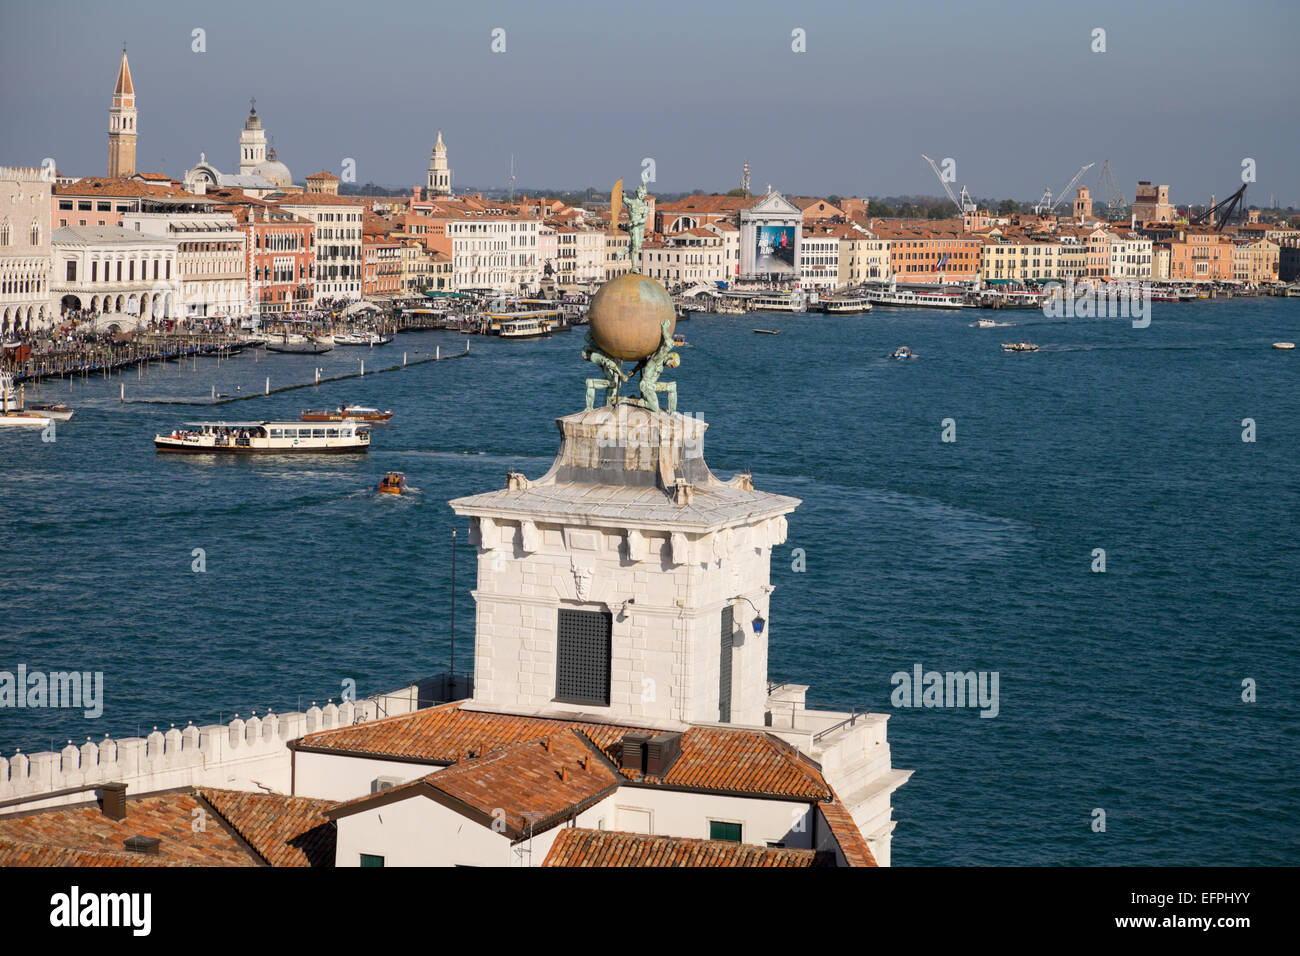 Punta della Dogana (Dogana di Mare), the old Venice customs post, now a modern art museum, UNESCO, Veneto, Italy - Stock Image